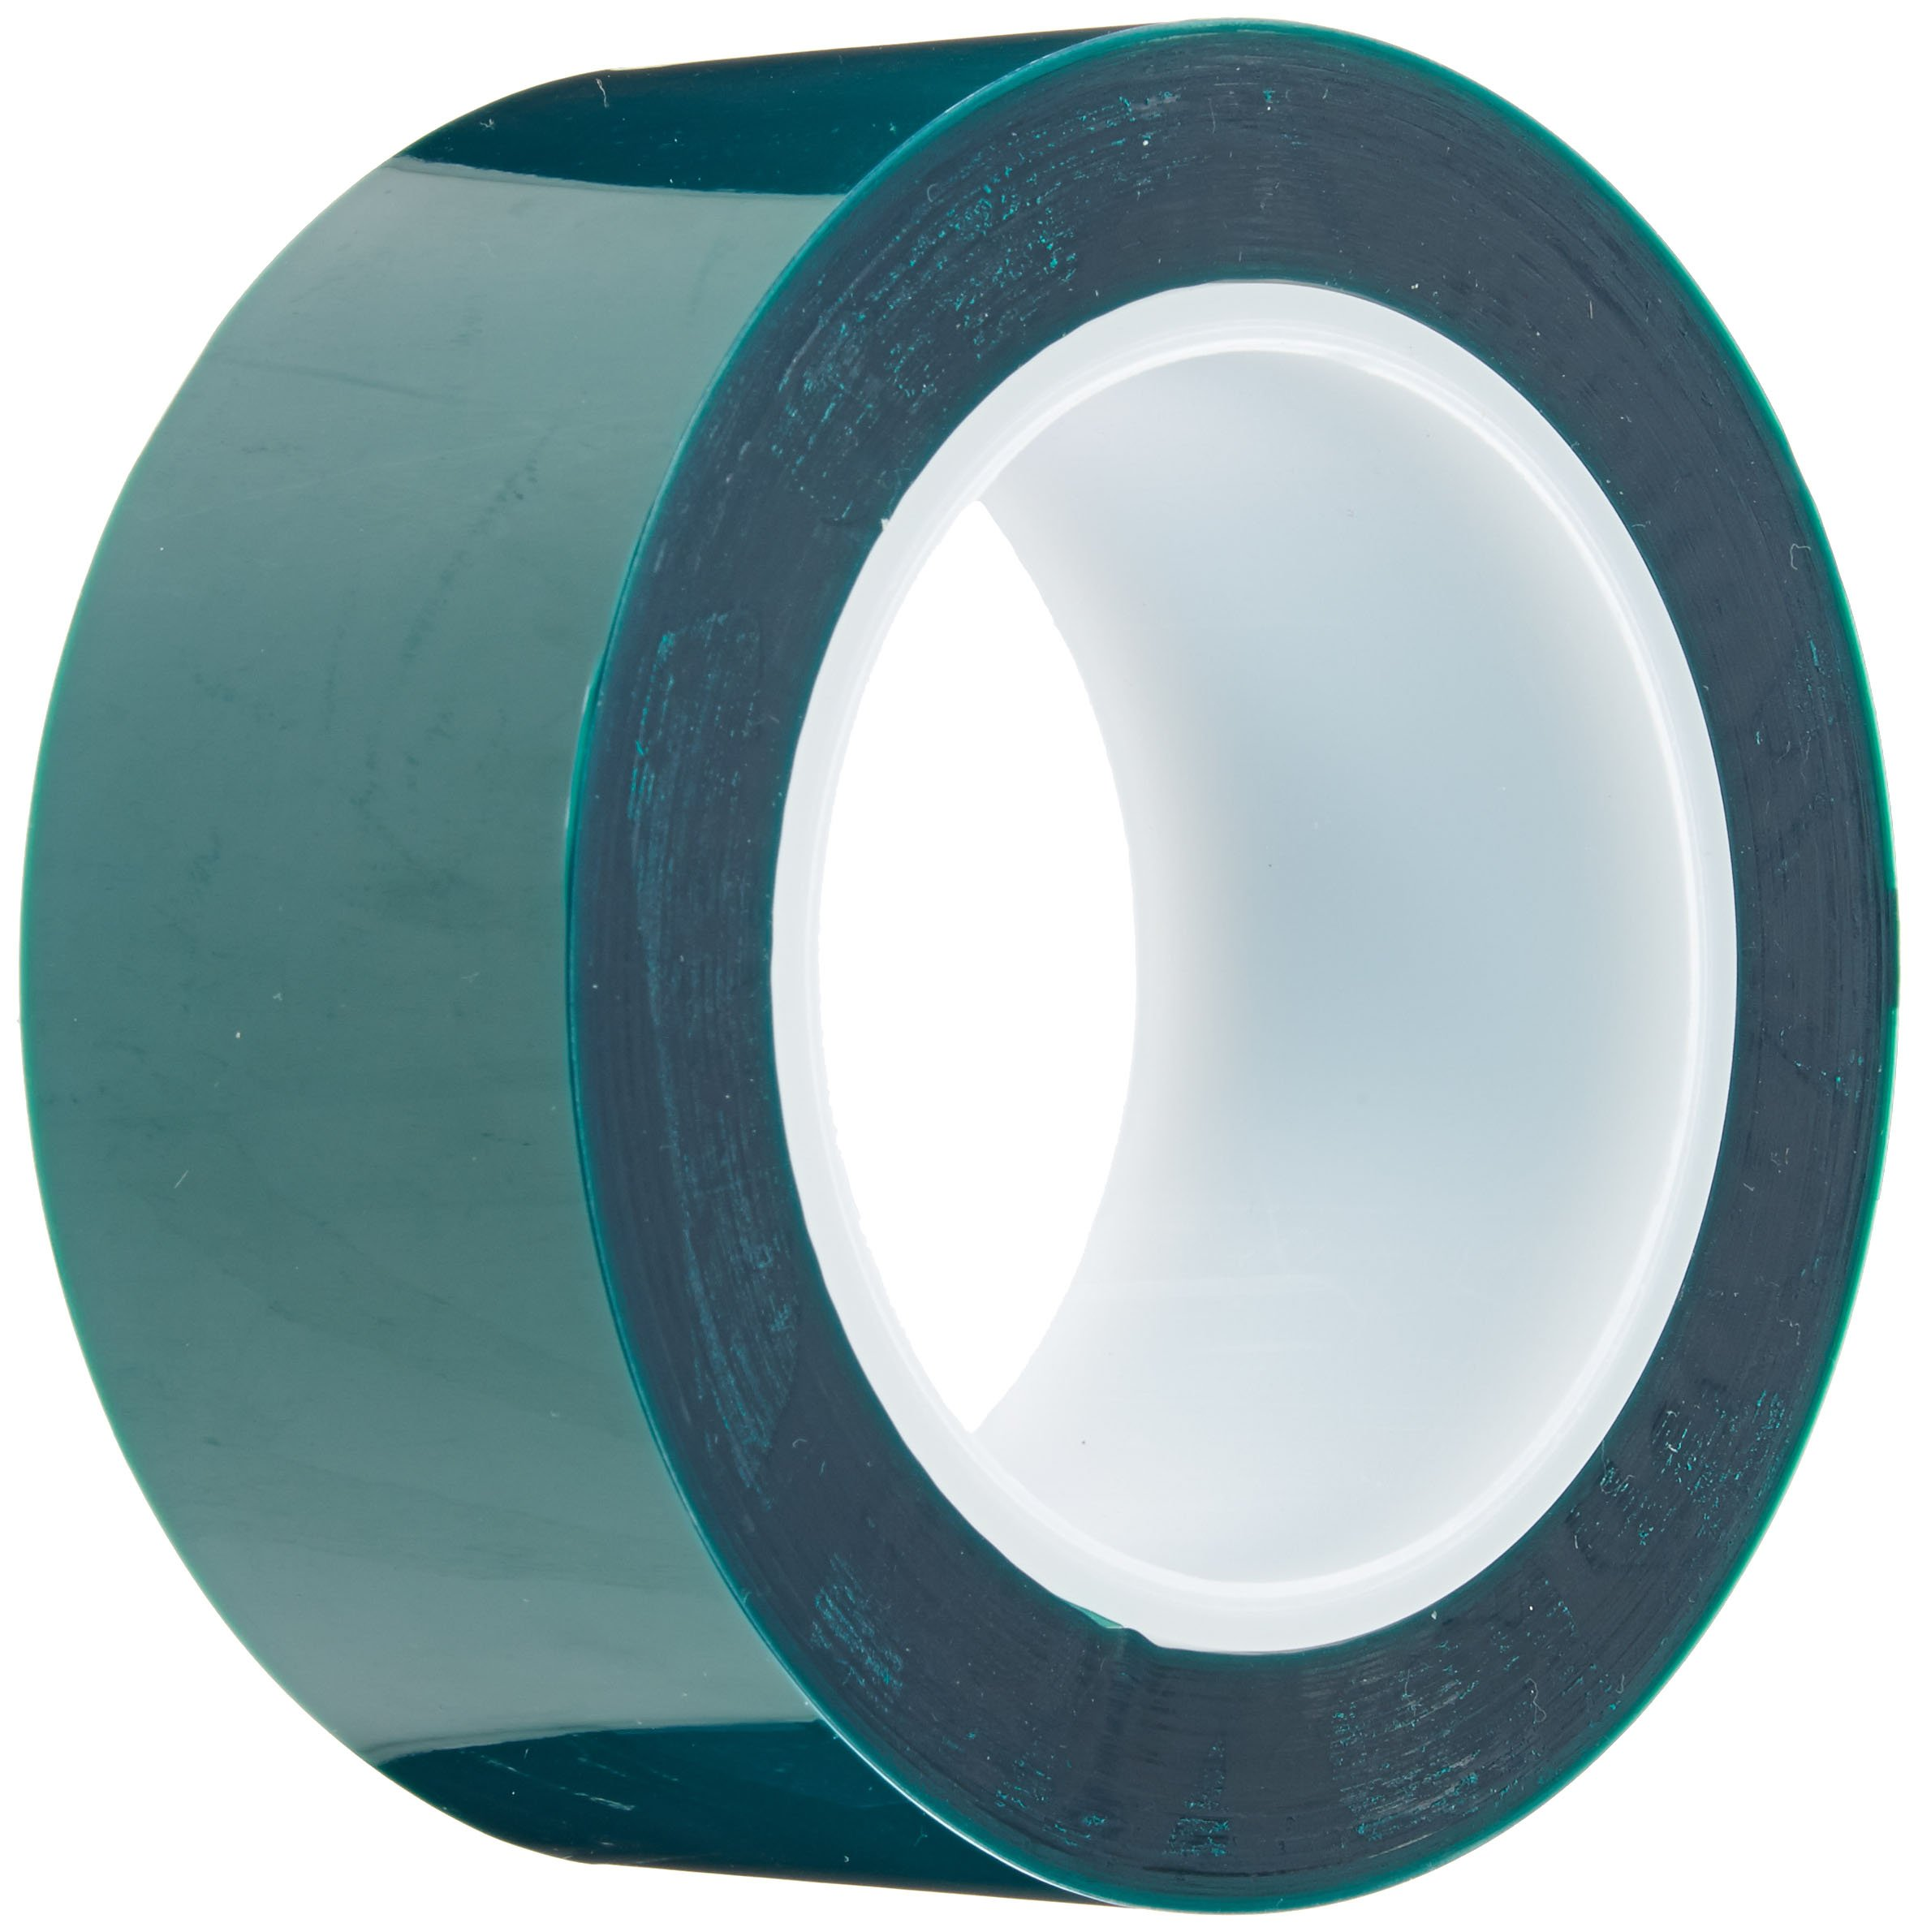 Maxi 248 Polyester/Silicone Single Coated Splicing Tape, 3.3 mil Thick, 72 yds Length, 2'' Width, Green